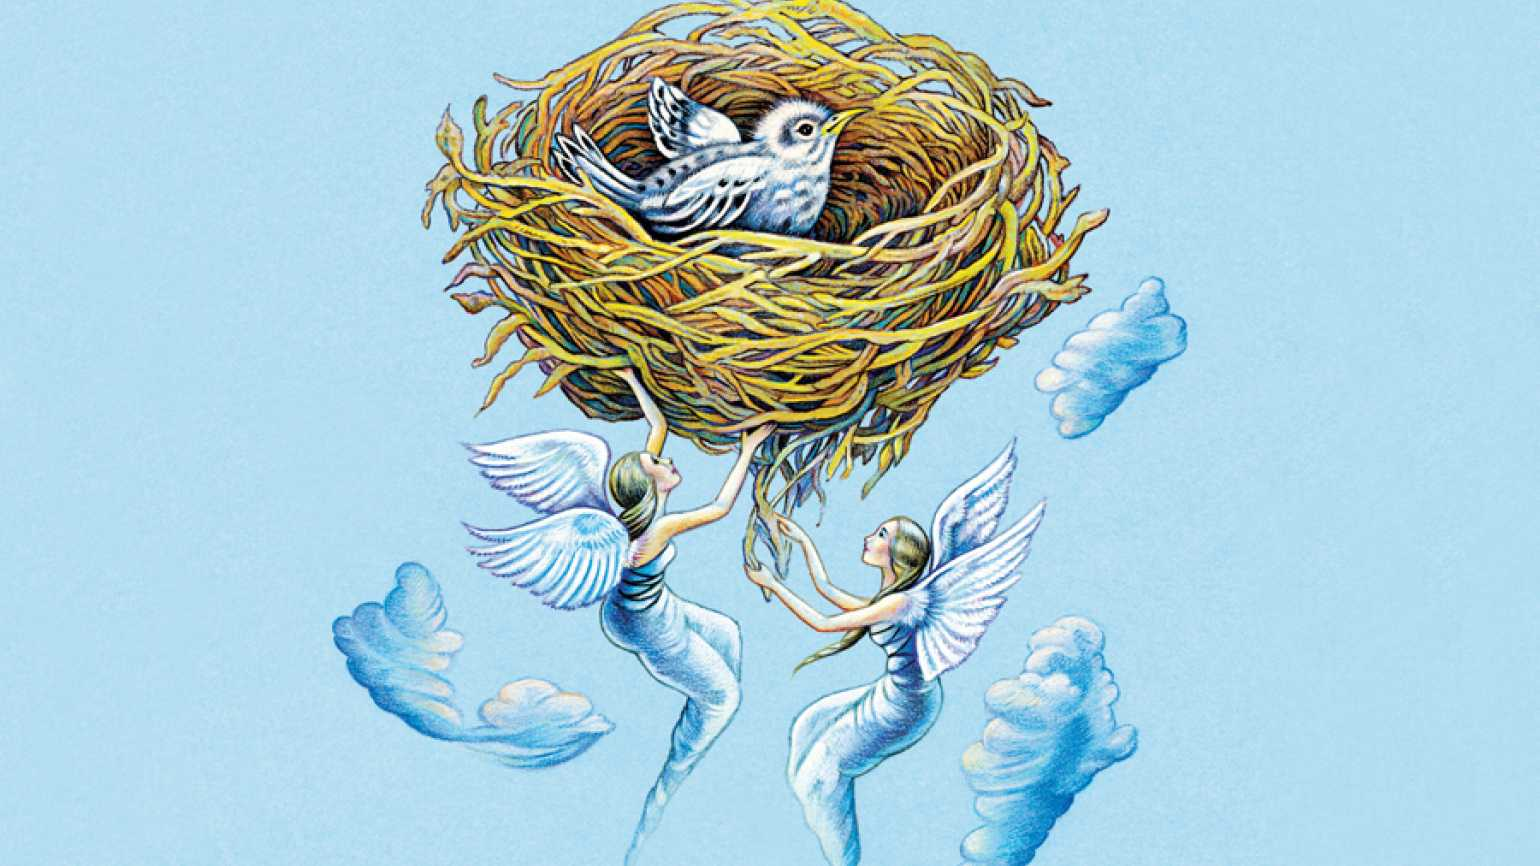 An artist's rendering of two angels tending to a baby bird in a nest